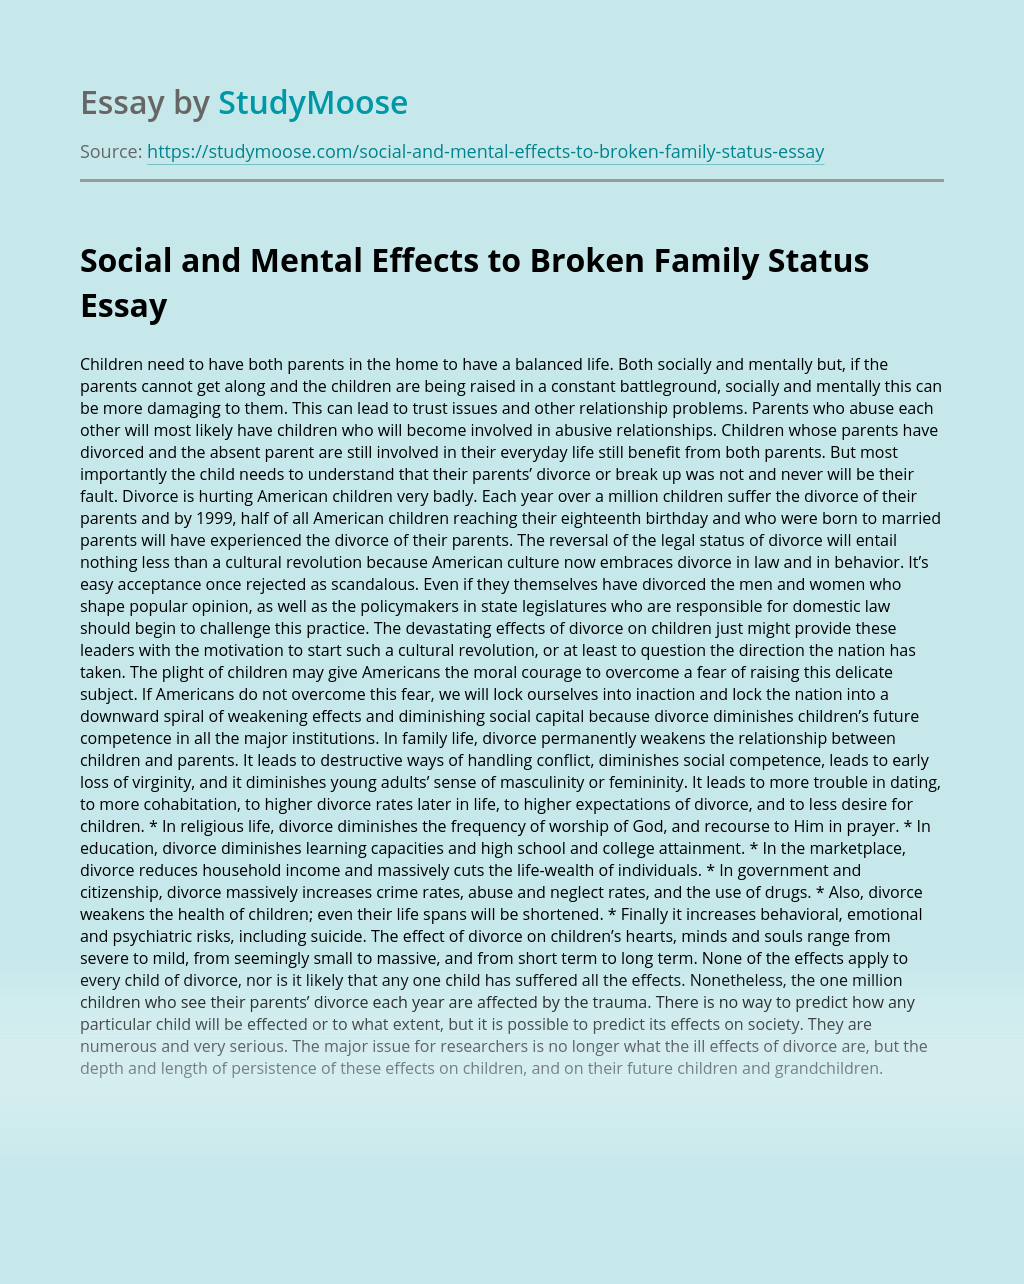 Social and Mental Effects to Broken Family Status